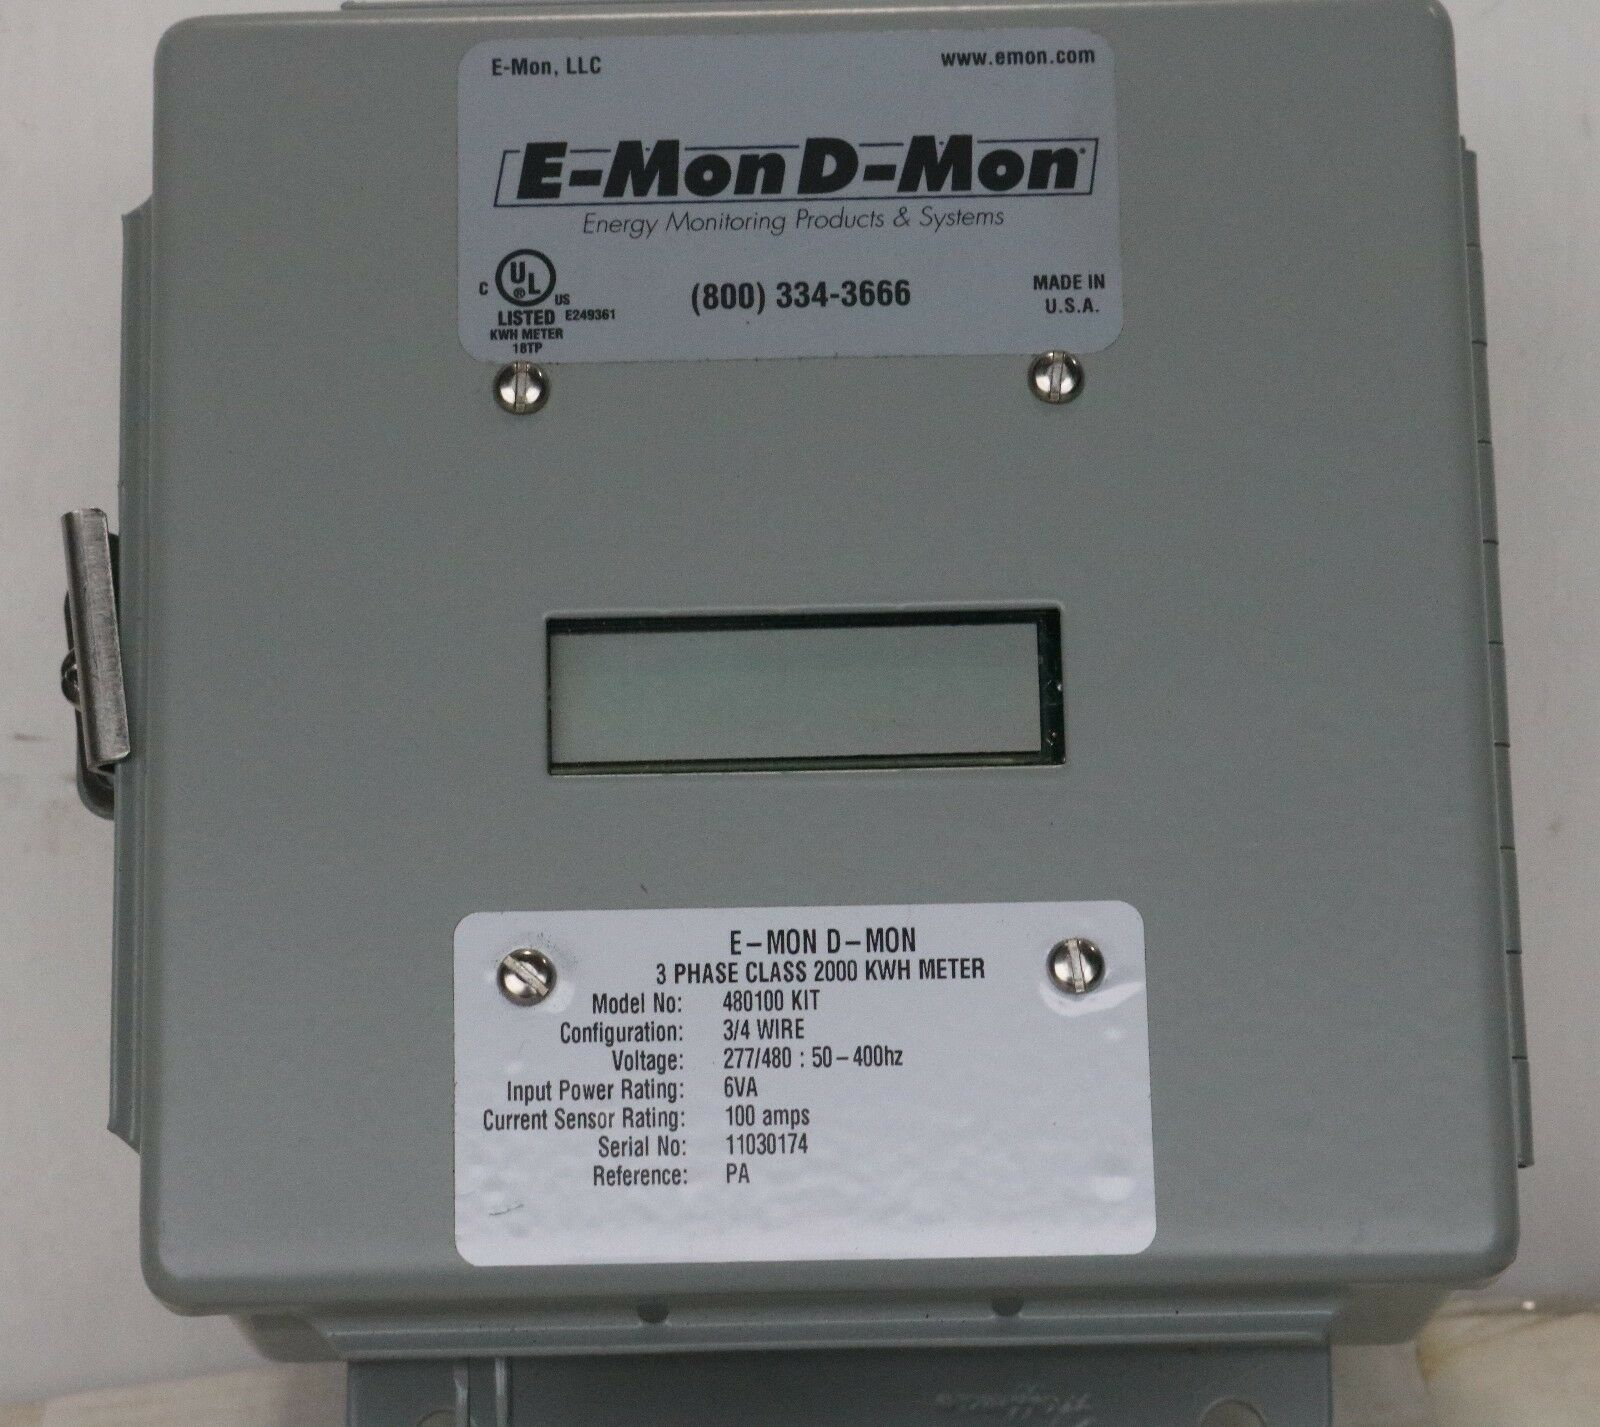 Brand New E-mon 480100KIT/ 11030174 (100A 277/480 Volt) Class 2000 In Box